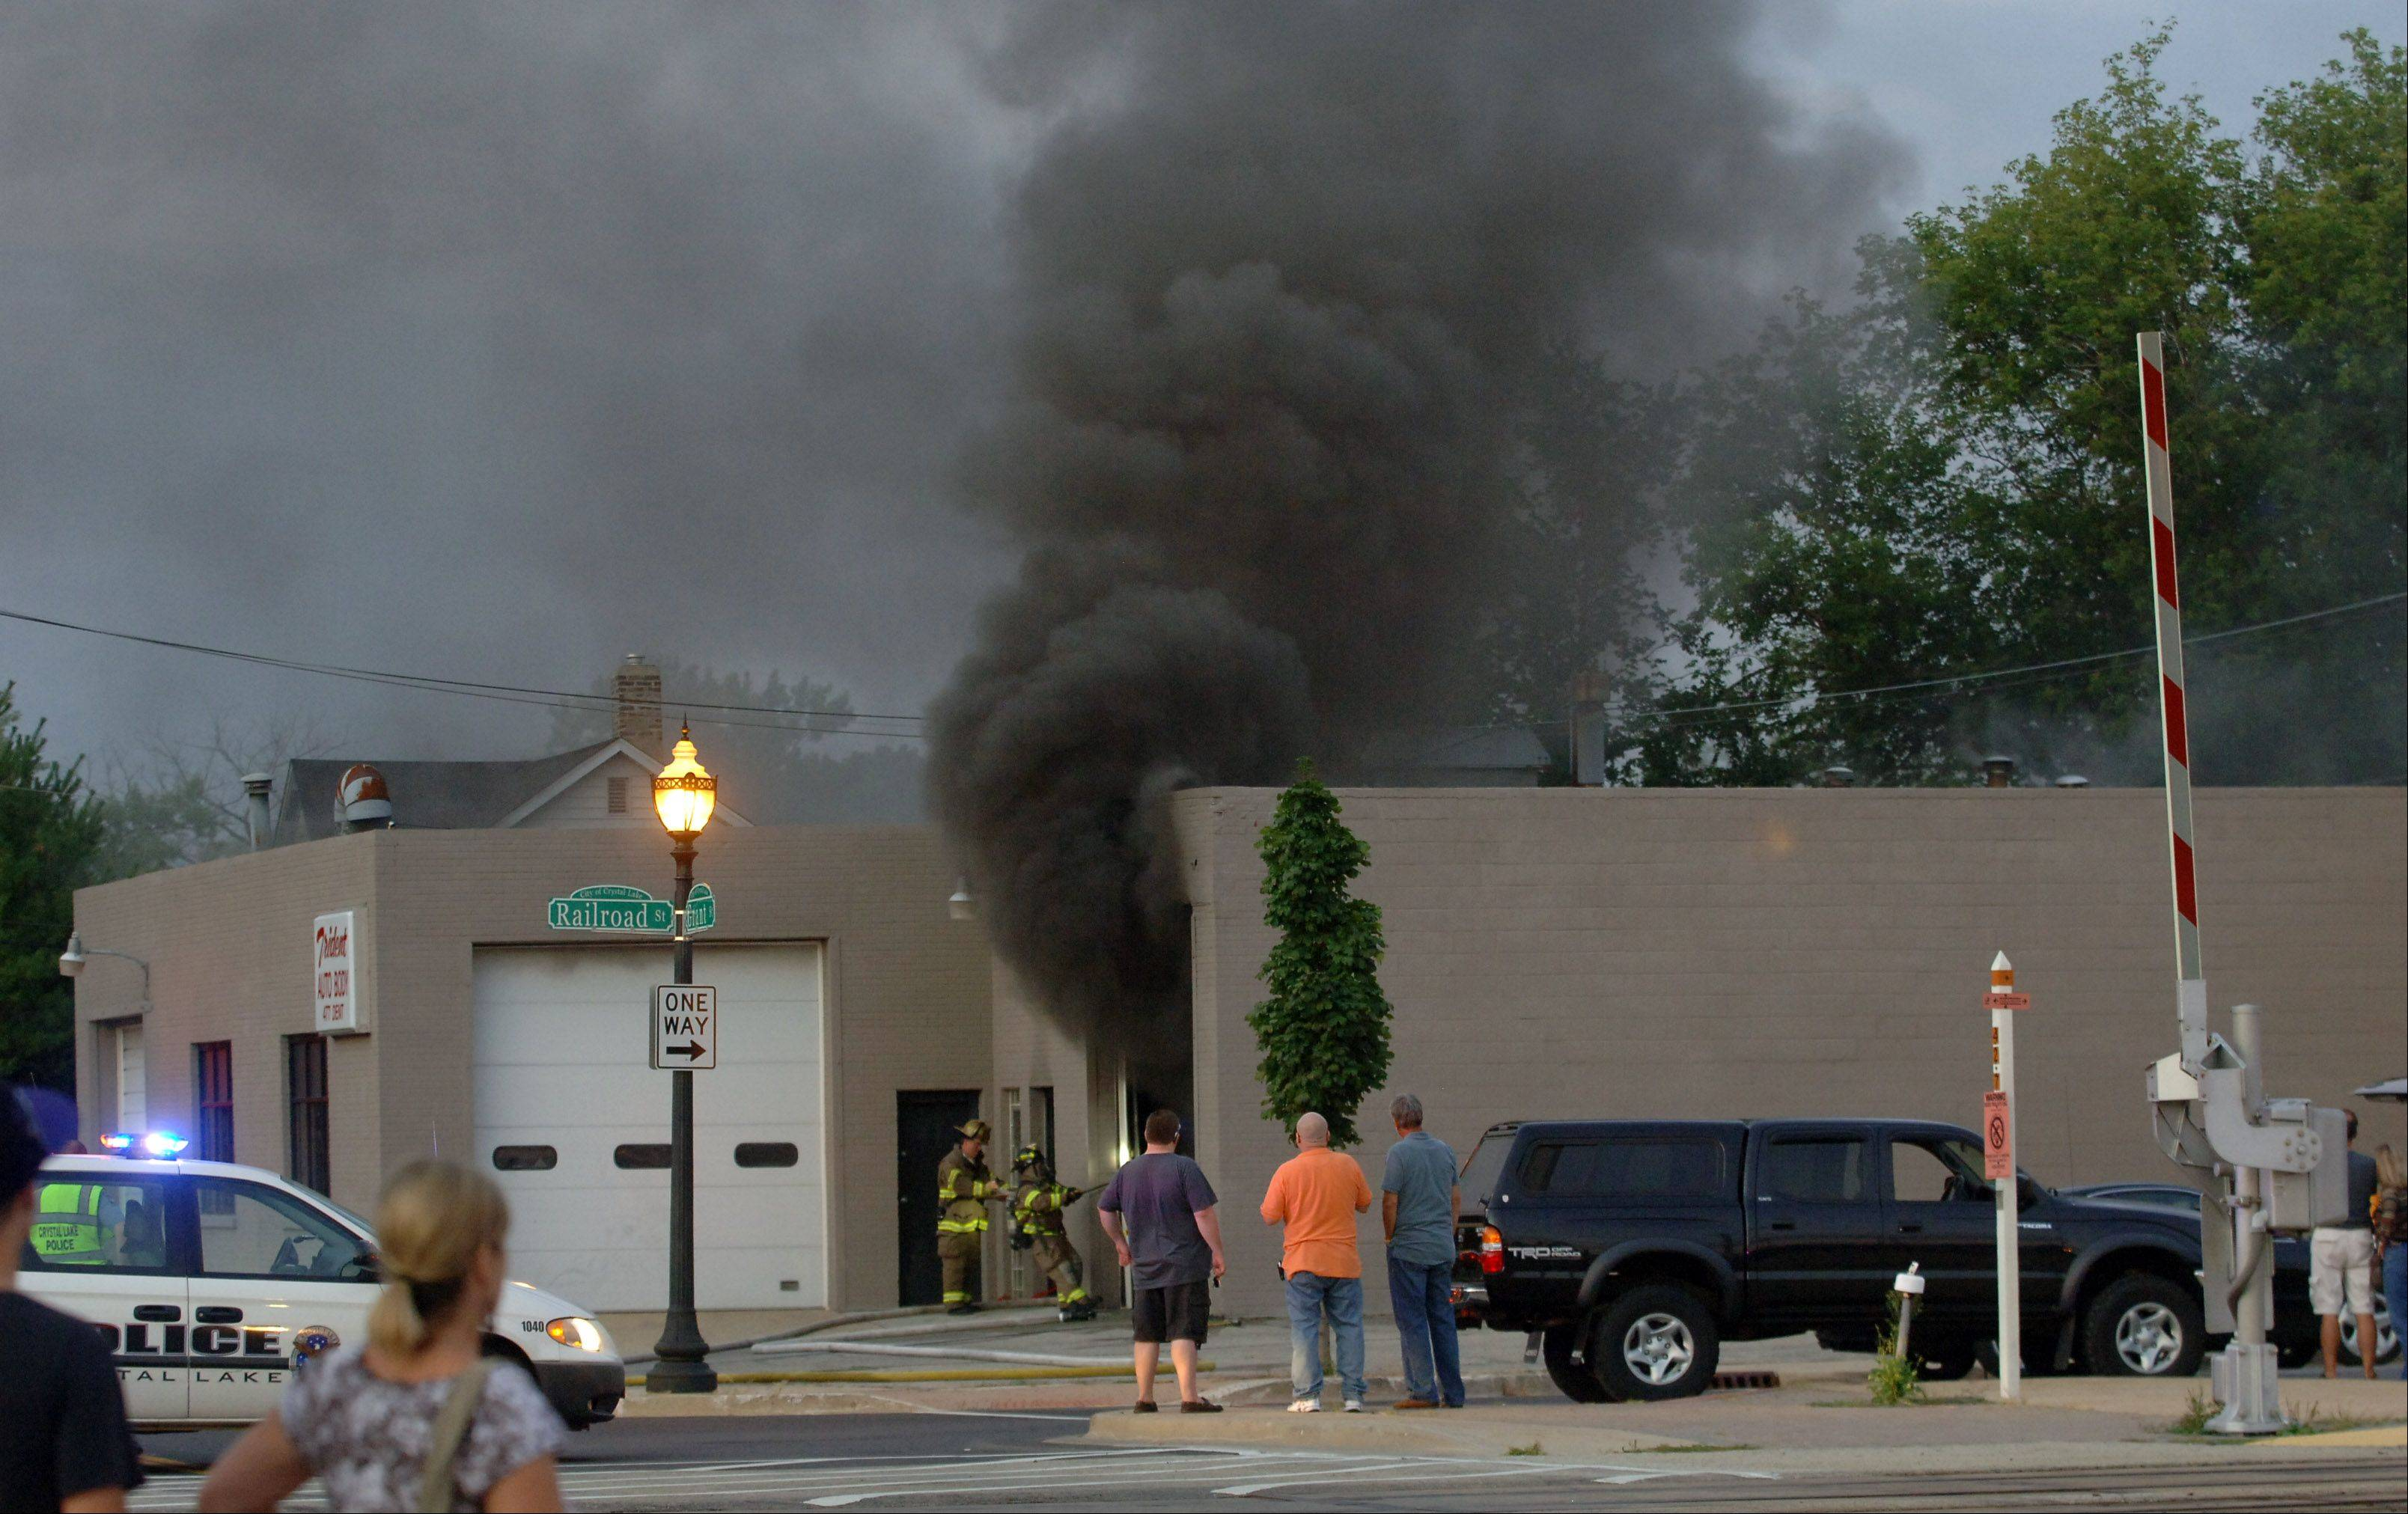 Crystal Lake firefighters battle a fire at the Trident Auto Body shop at 80 Railroad St. in downtown Crystal Lake Friday. Fire officials were notified of the fire around 7:30 p.m. and arrived to find heavy black smoke pouring out of the roof and doors.